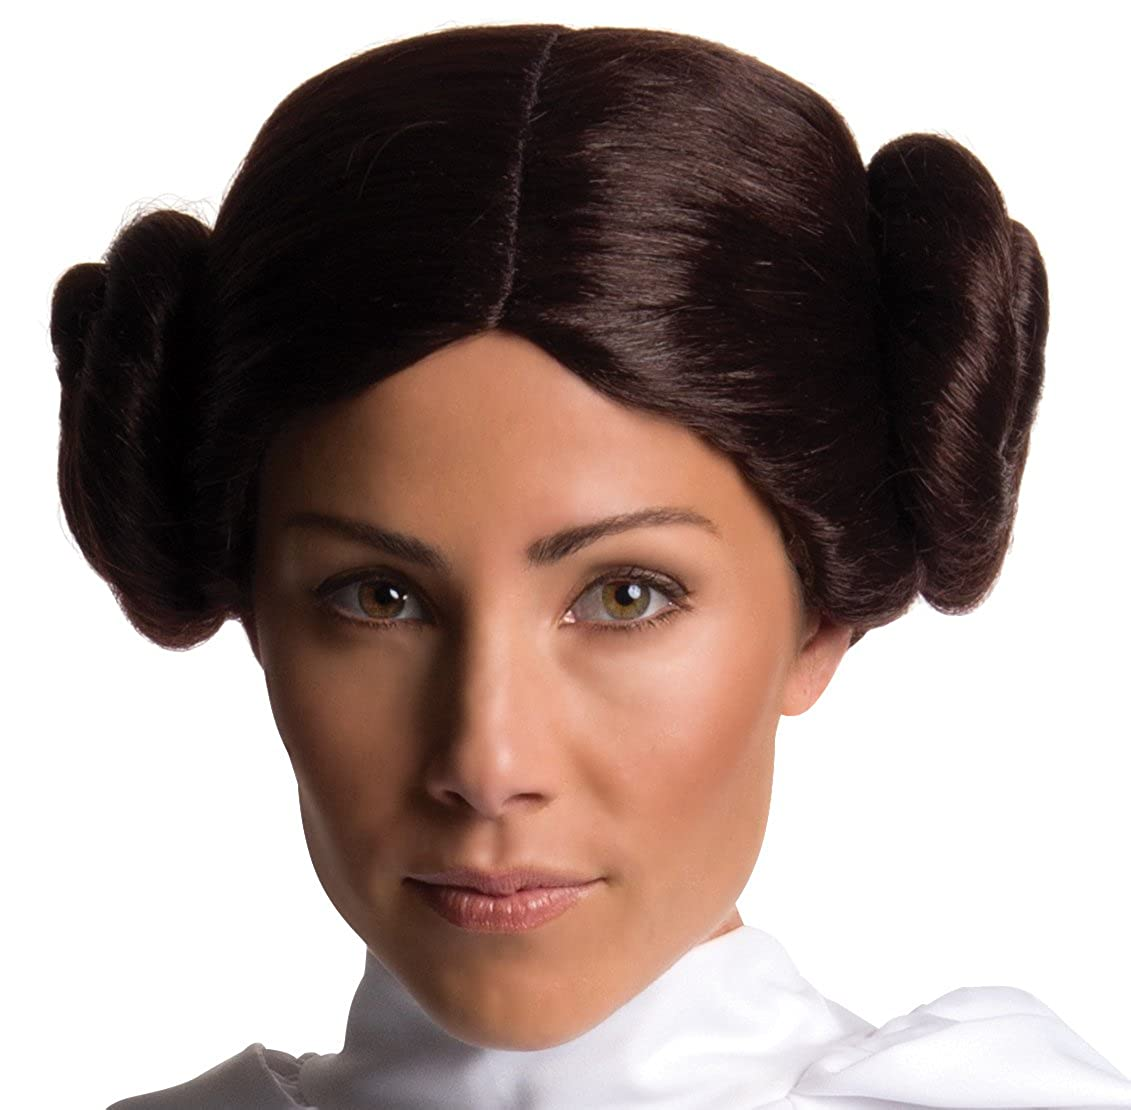 Secret Wishes Adult Star Wars Princess Leia Costume Wig 33630